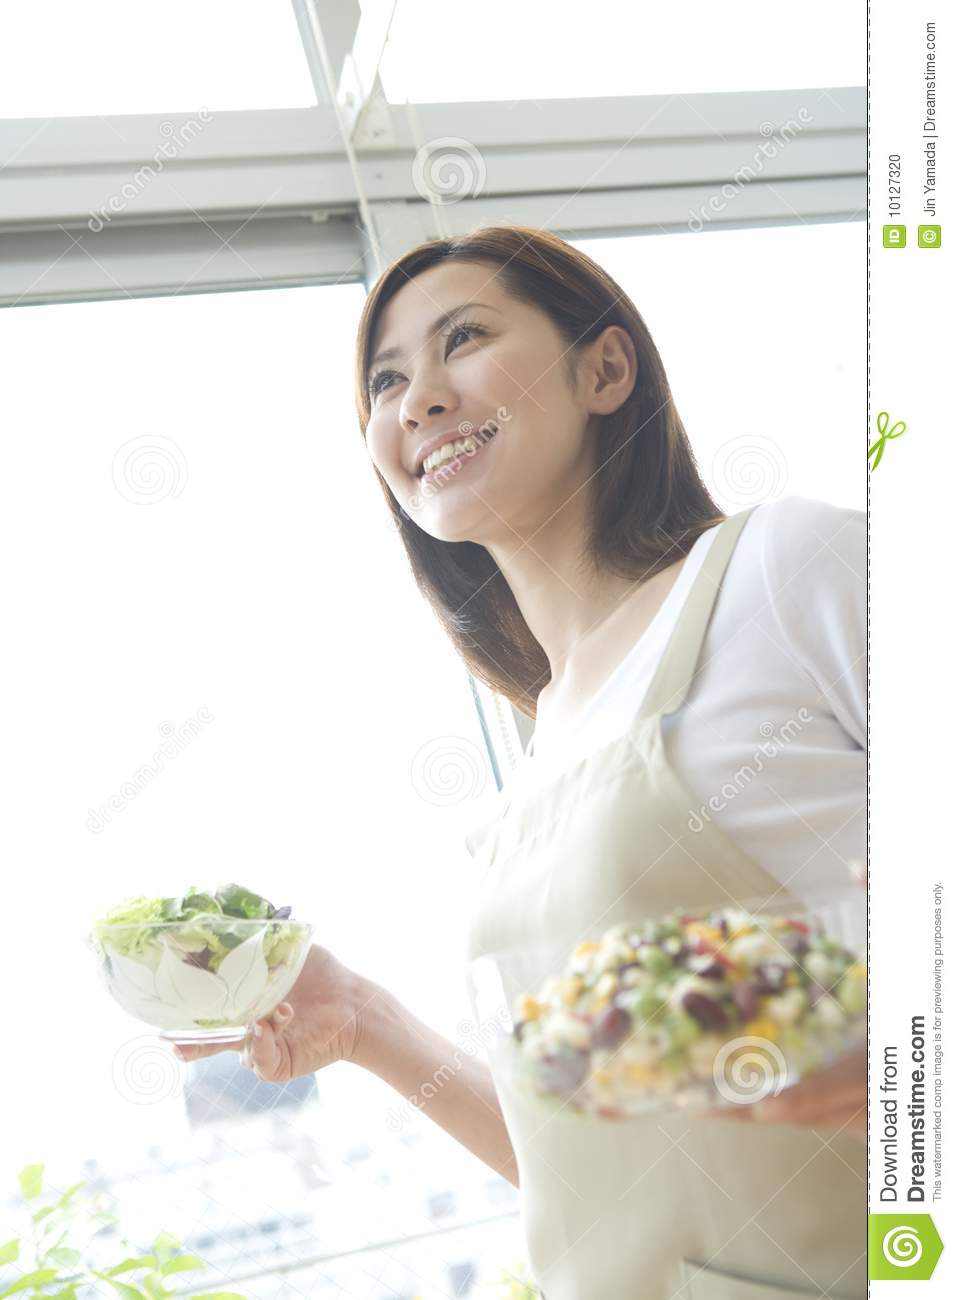 Asian Woman Cooking 95